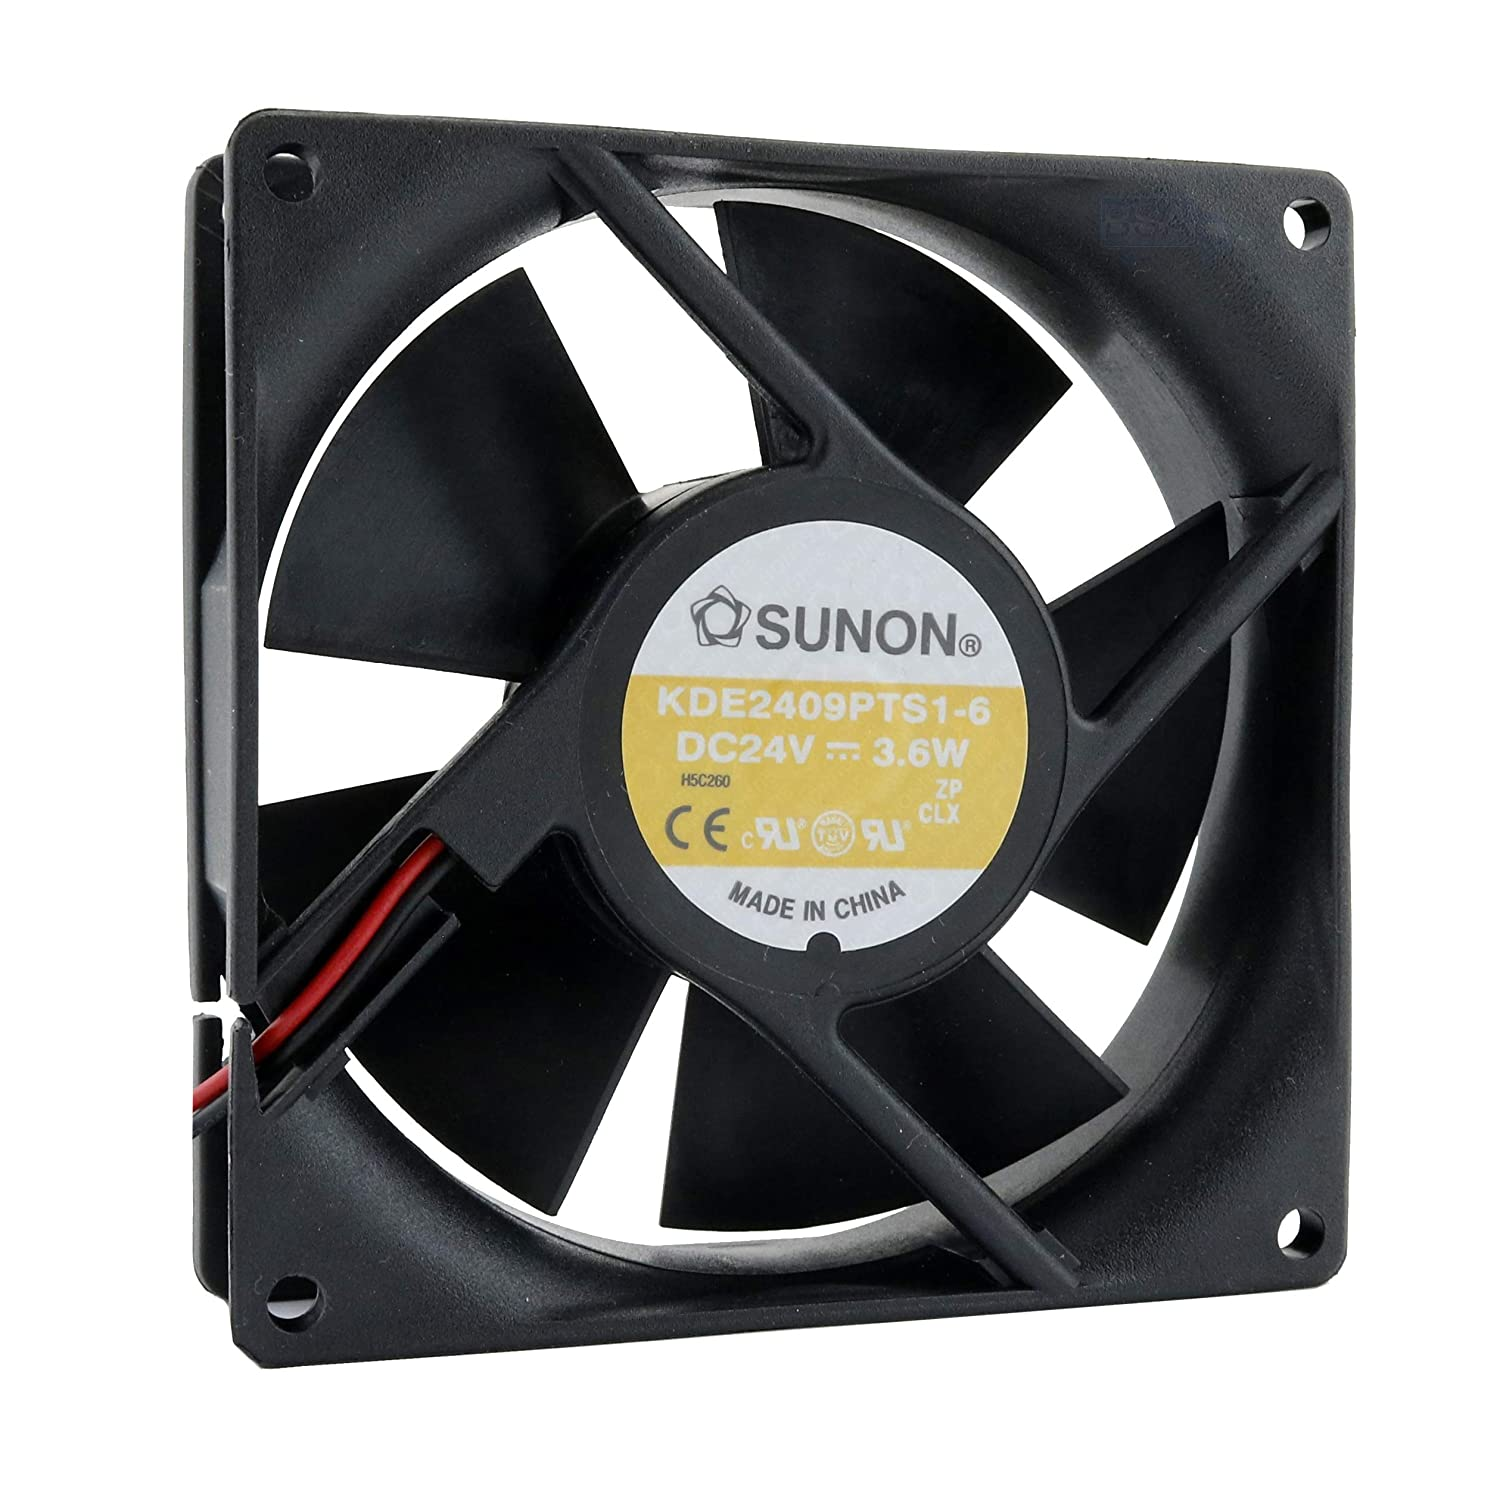 SUNON Ventilador 92 mm 92 x 92 x 25 KDE2409PTS1-6 24 V 3,6 W DC Air Fan 9 cm 2 hilos (+/-)